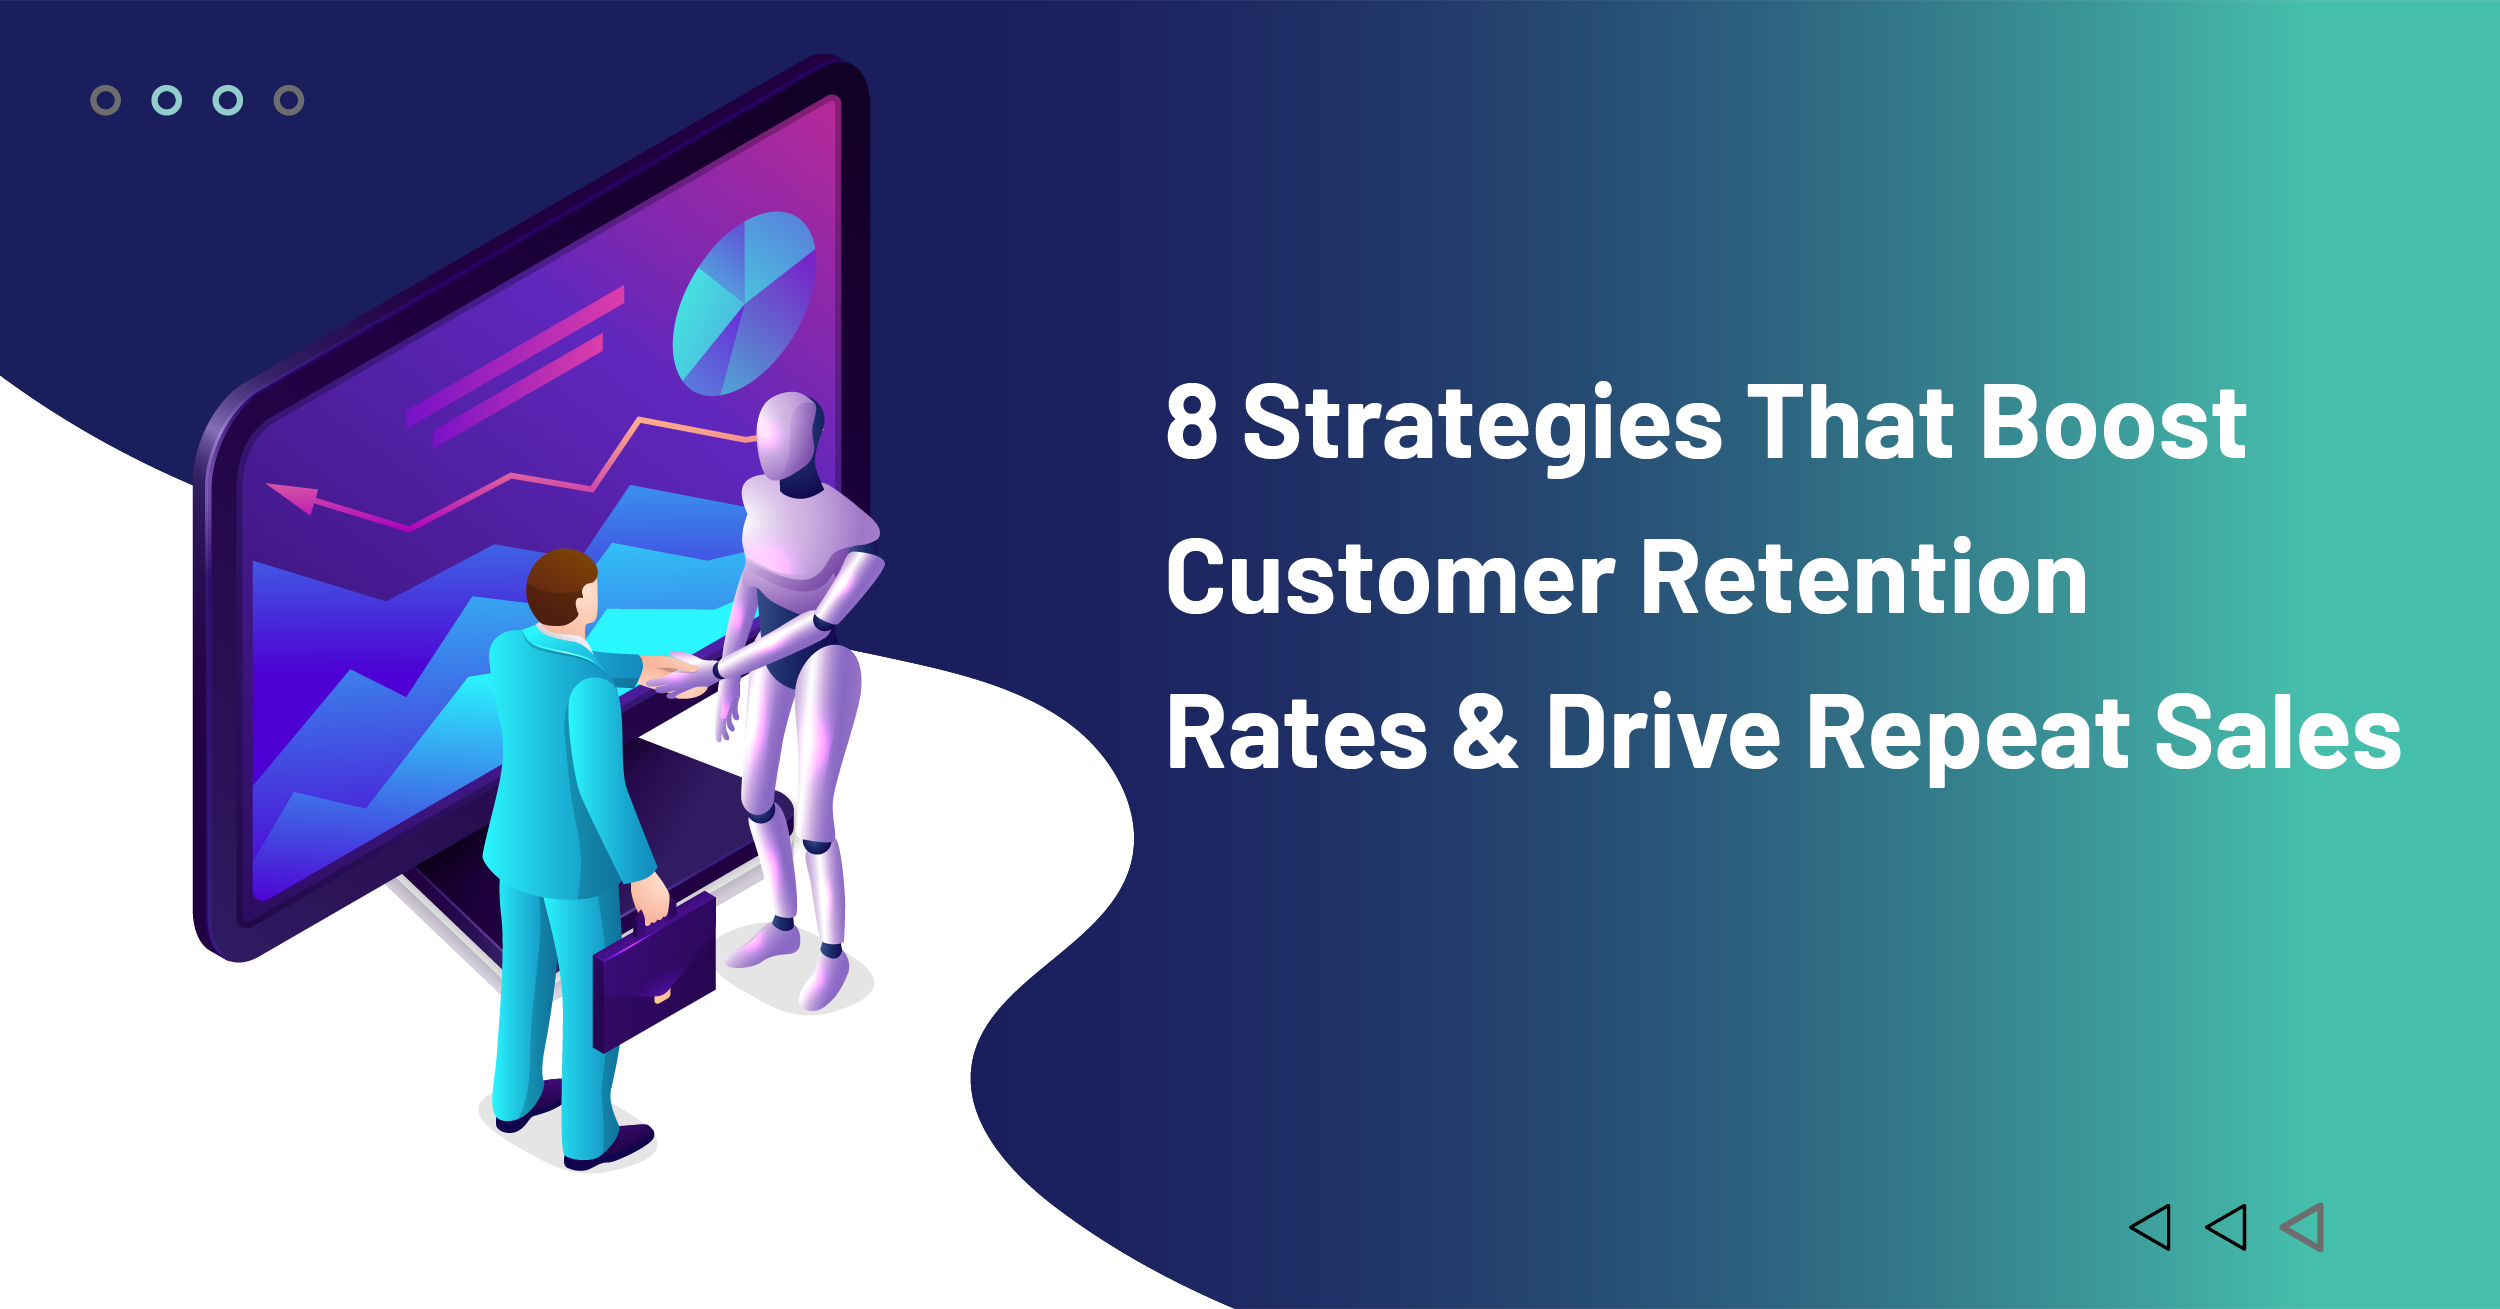 8 Strategies That Boost Customer Retention Rates & Drive Repeat Sales